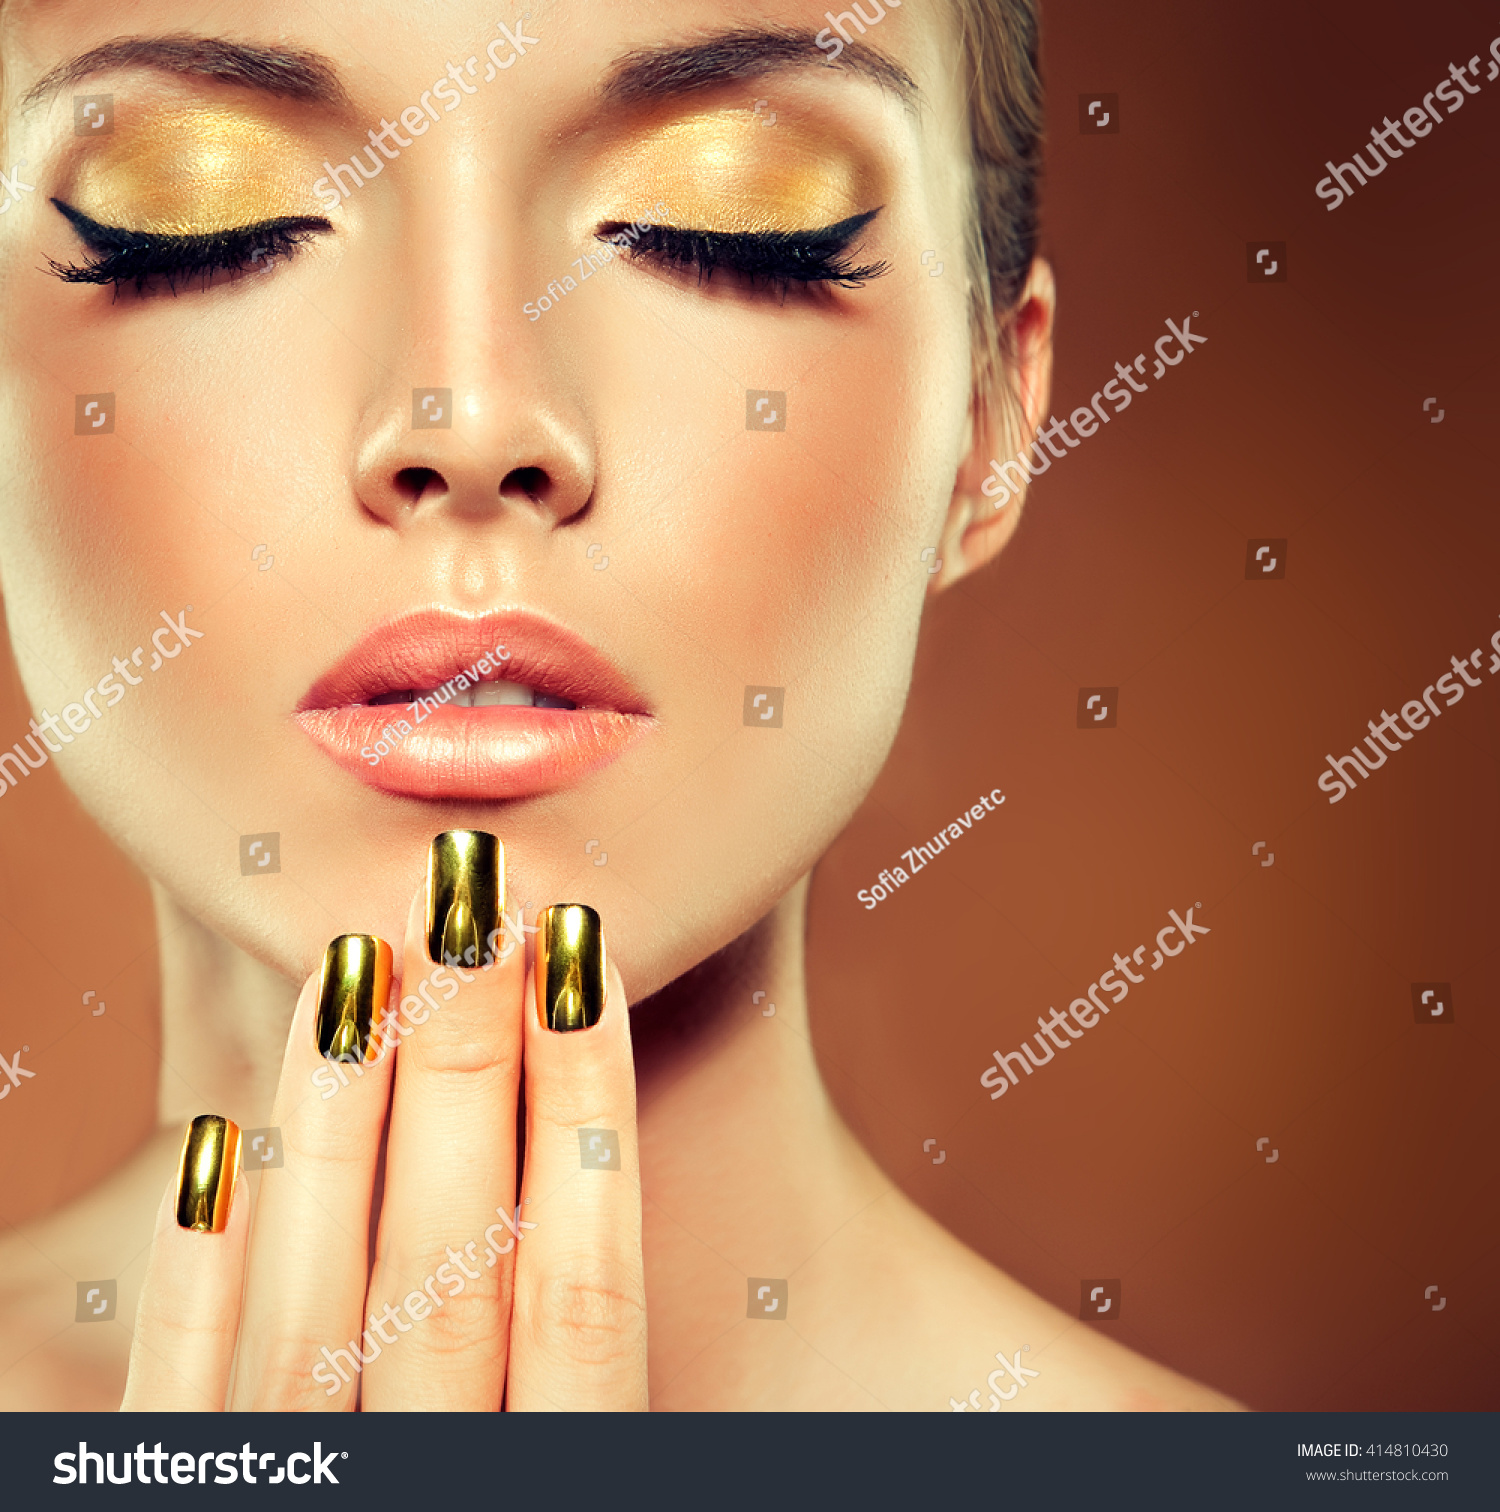 A Nail Art Beauty Salon Fashion Makeover Game For Girls: Girl Model Golden Makeup Gold Metal Stock Photo 414810430